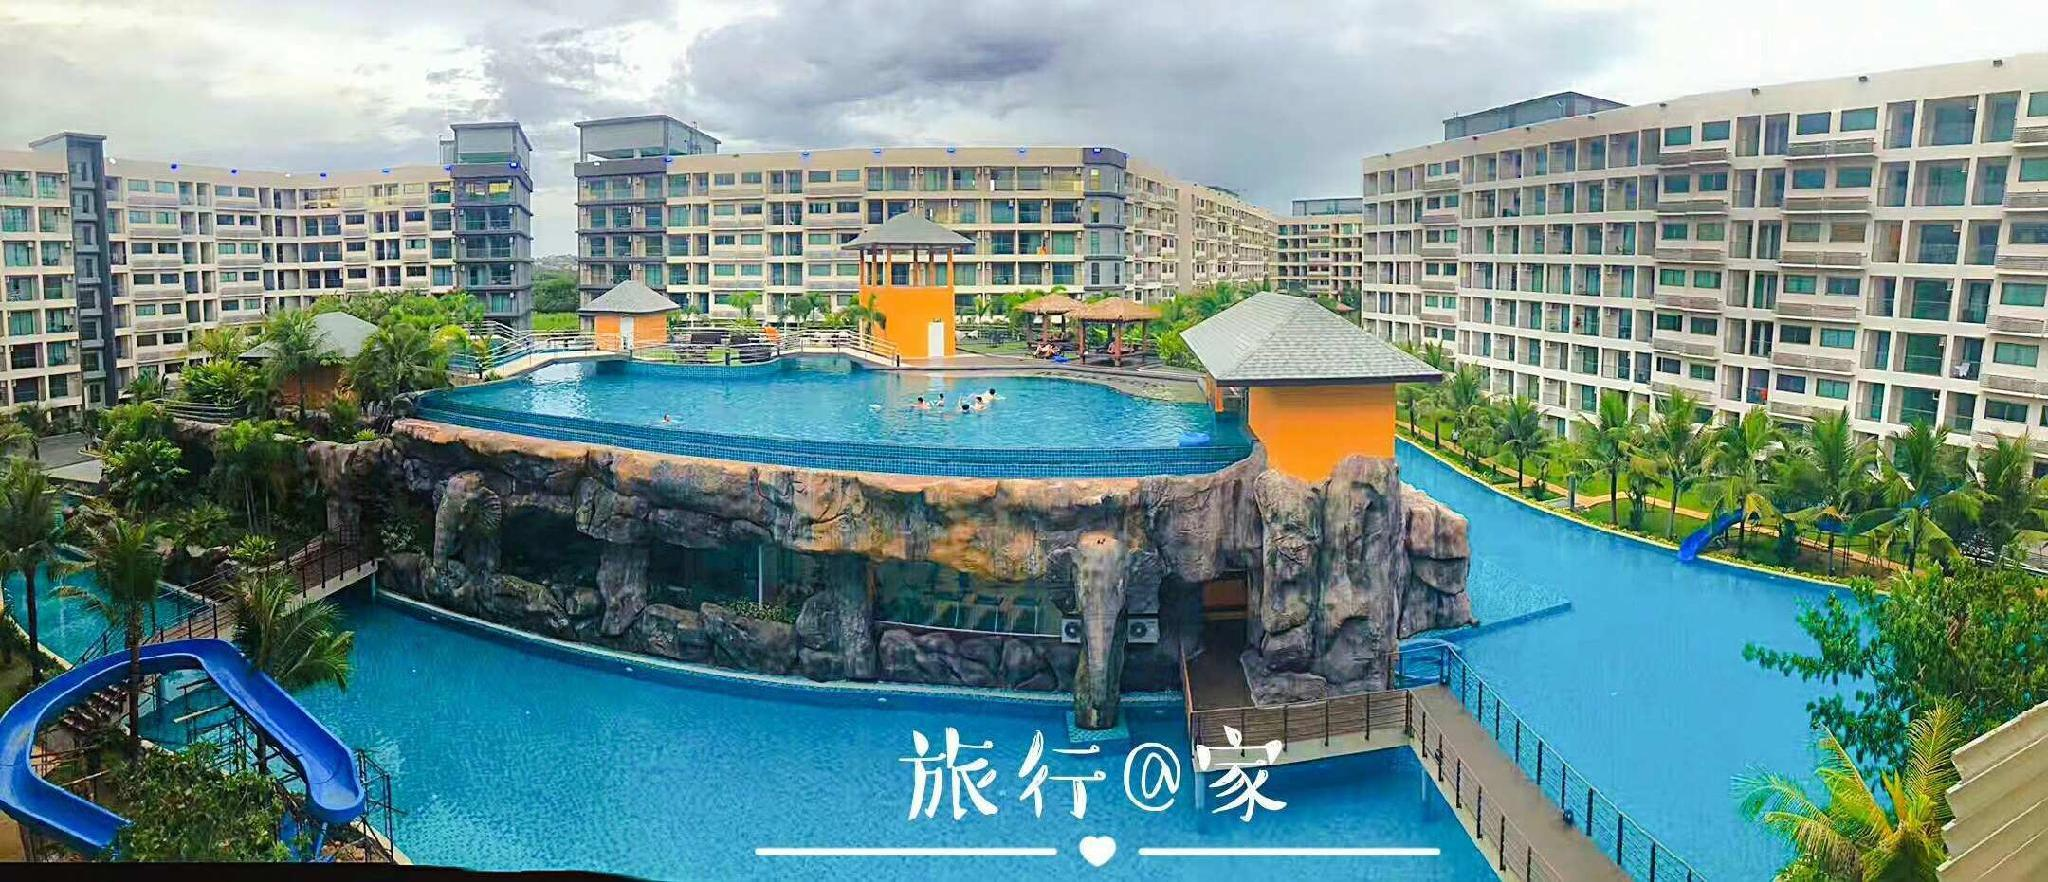 Oversize poolrelaxing vacation permanent residence Oversize poolrelaxing vacation permanent residence